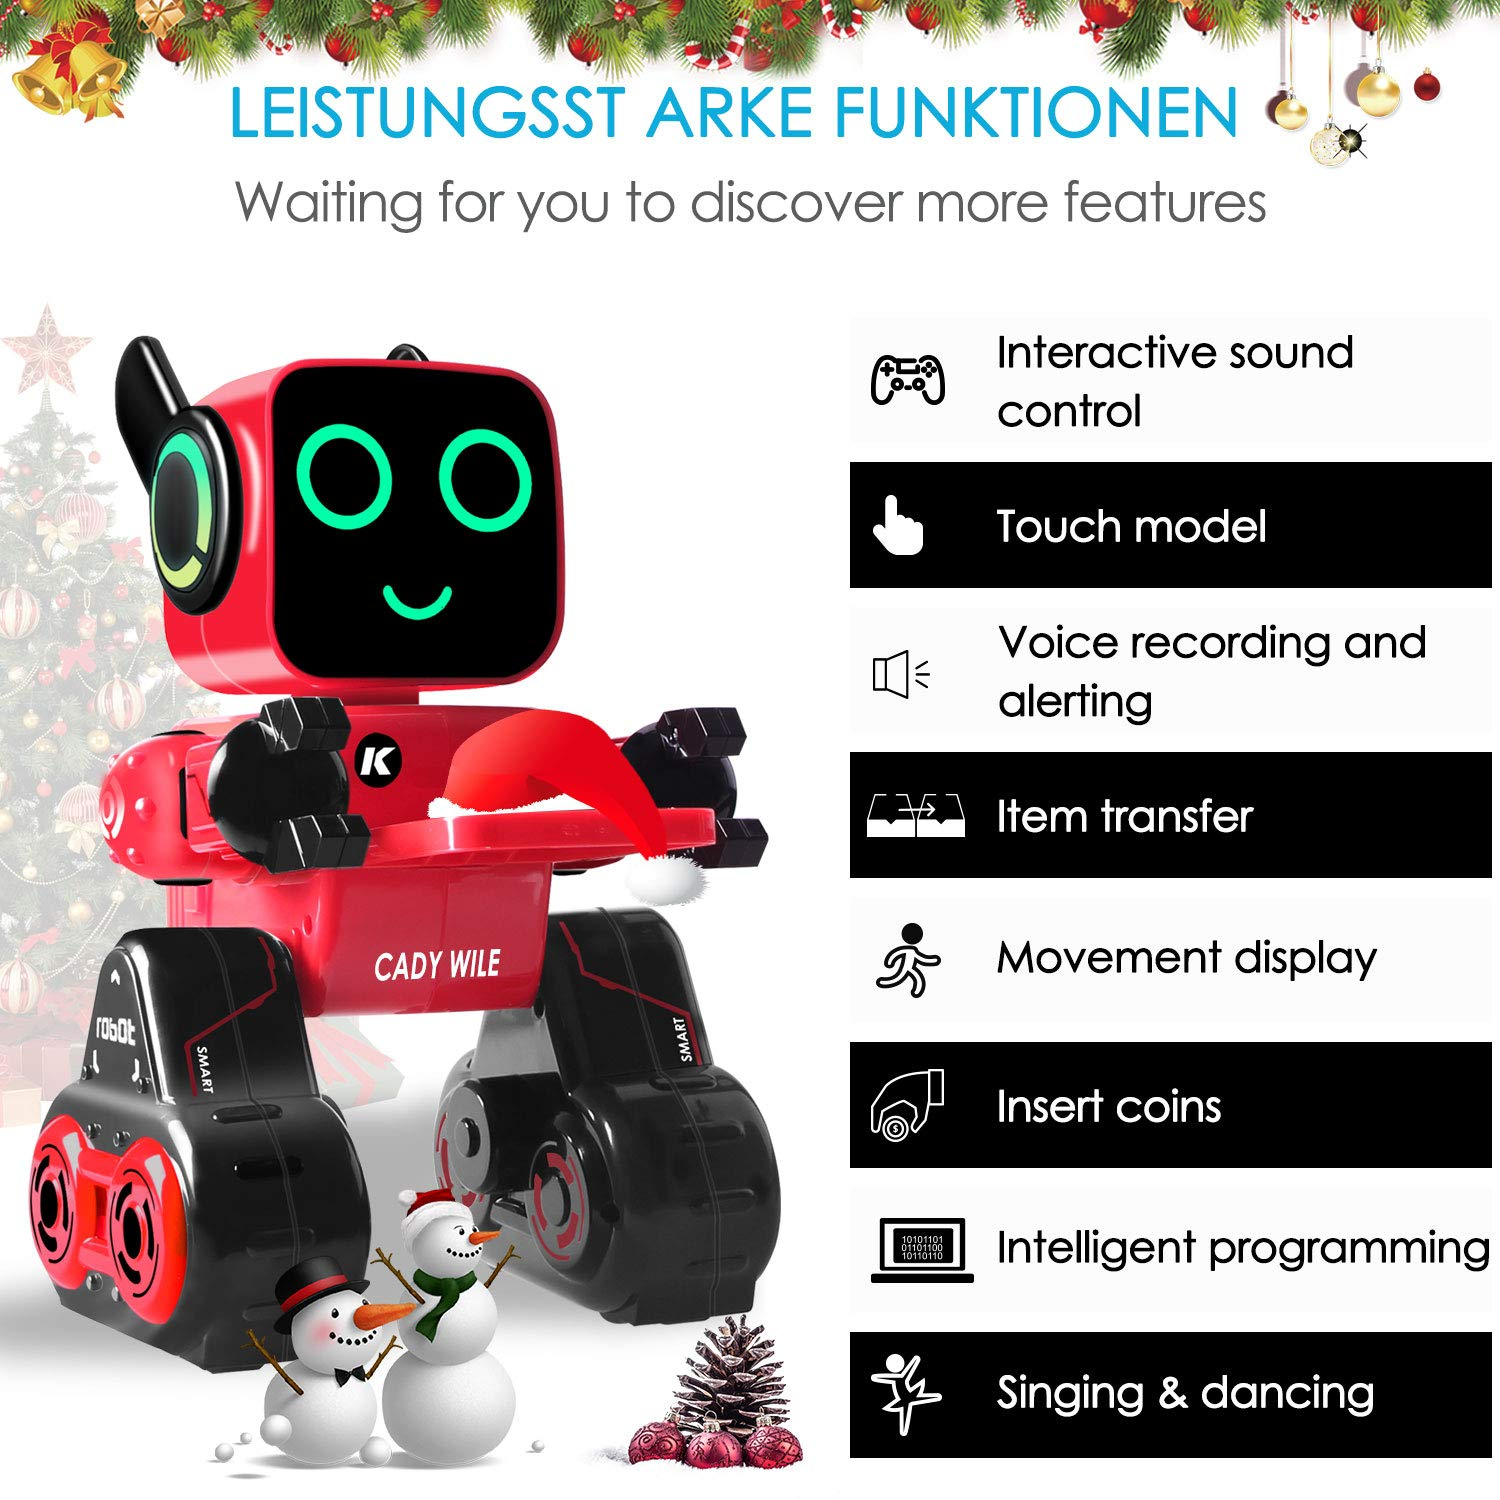 IHBUDS Programmable Remote Control Toy Robot for Kids,Touch & Sound Control, Speaks, Dance Moves, Plays Music. Built-in Coin Bank.Rechargeable RC Robot Kit for Boys, Girls All Ages-Red/Black by IHBUDS (Image #2)